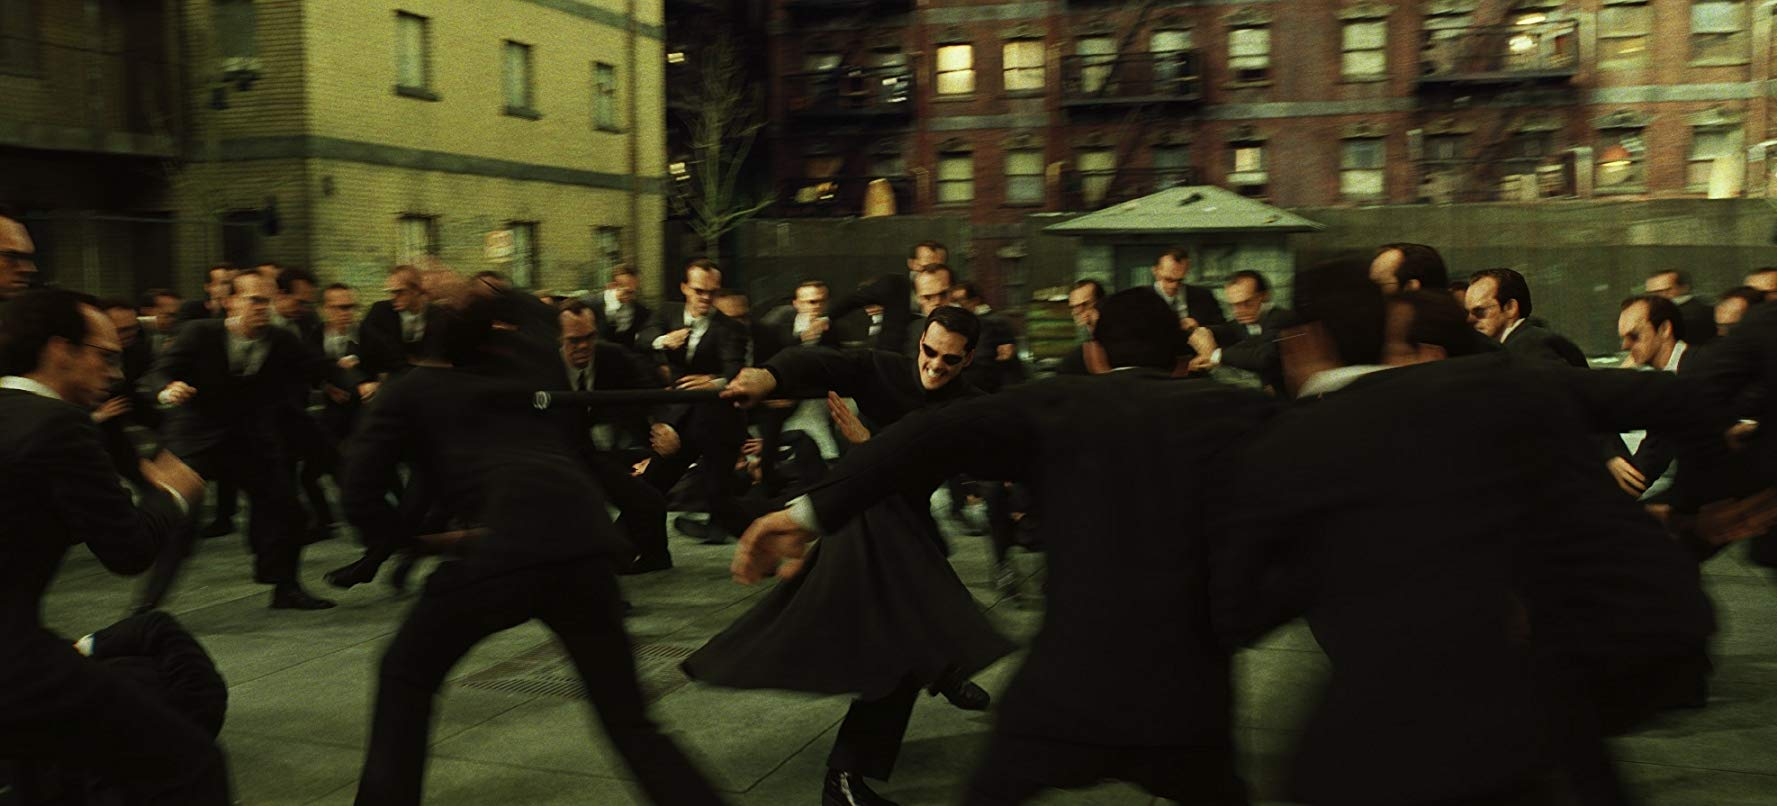 Neo (Keanu Reeves) vs hundreds of Agent Smiths (Hugo Weaving) in The Matrix Reloaded (2003)